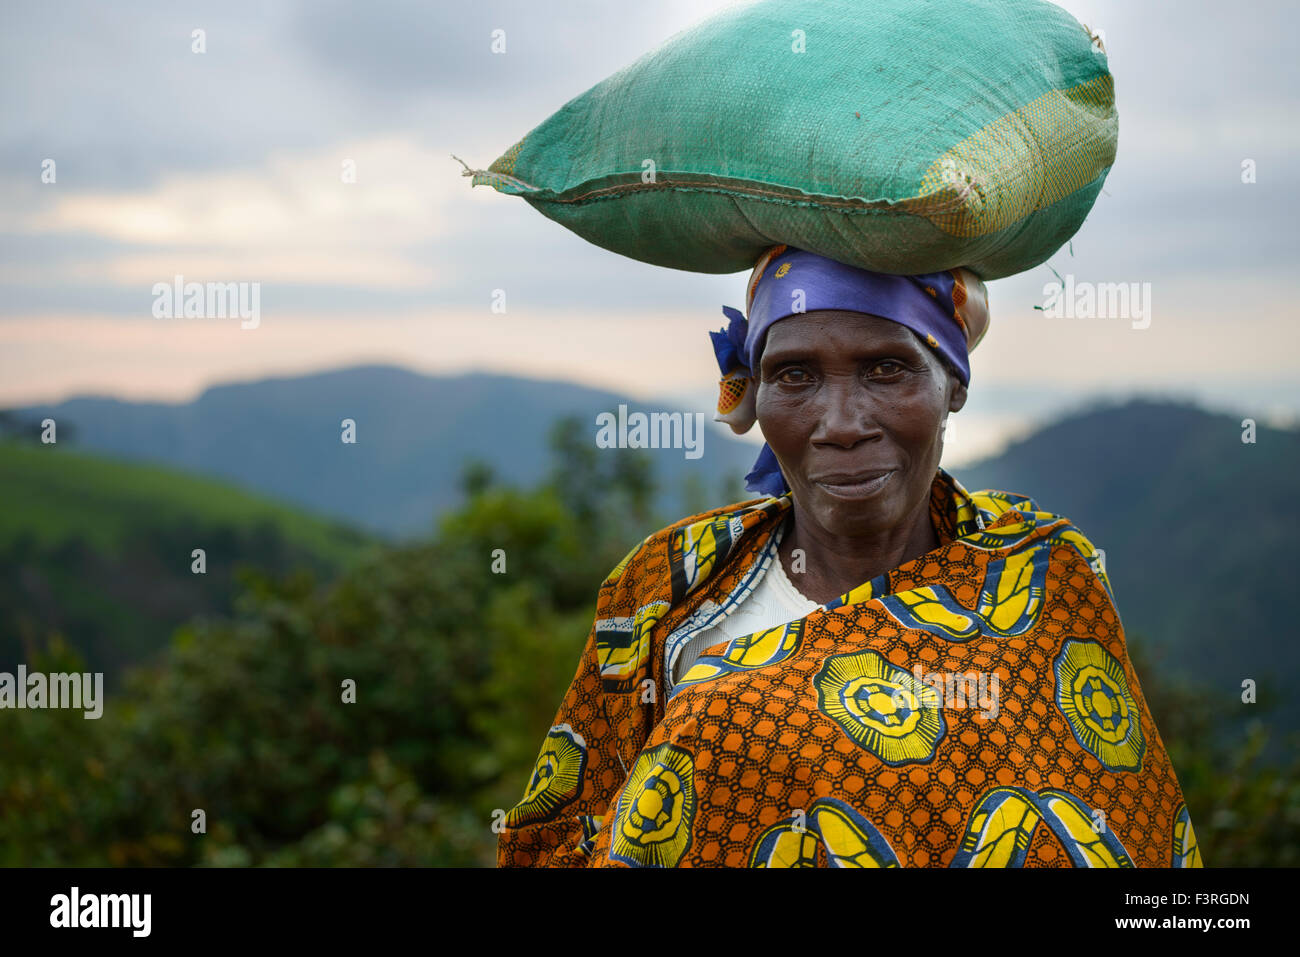 Woman with traditional clothes, Burundi, Africa - Stock Image